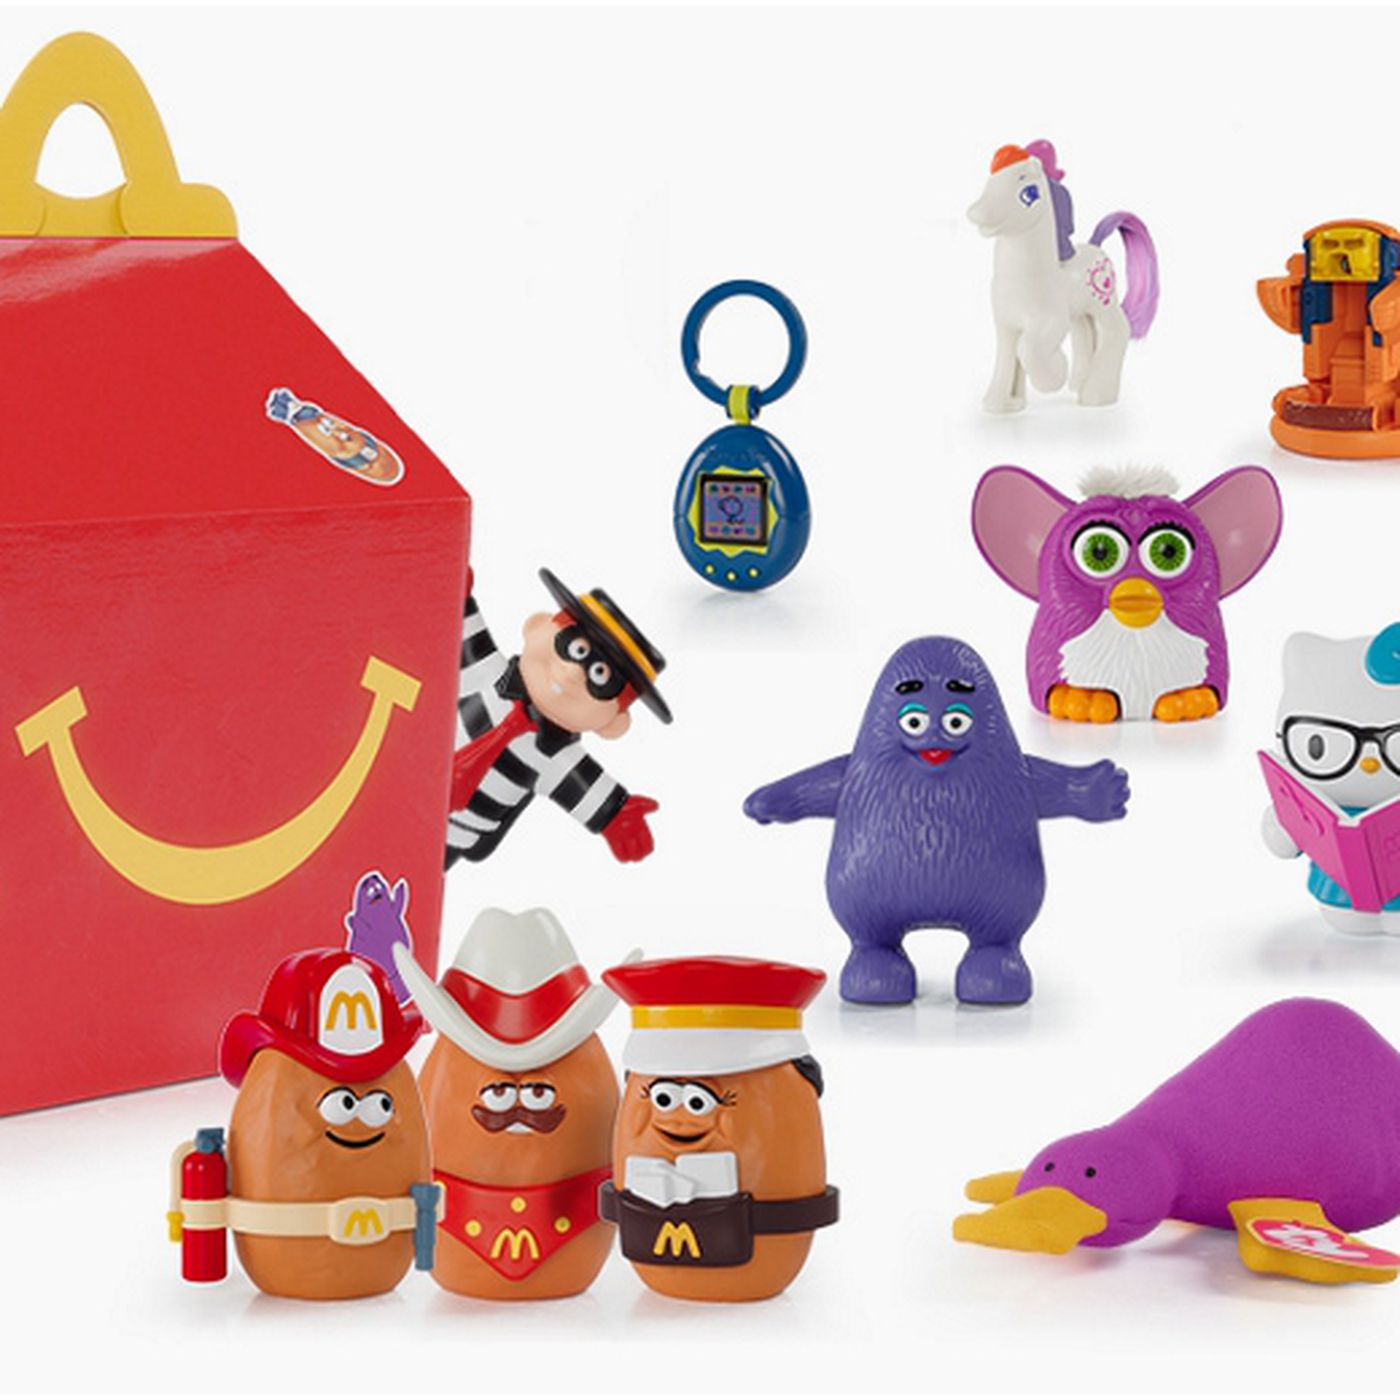 Mcdonald S Brings Back Toys For The Happy Meal S 40th Anniversary Eater